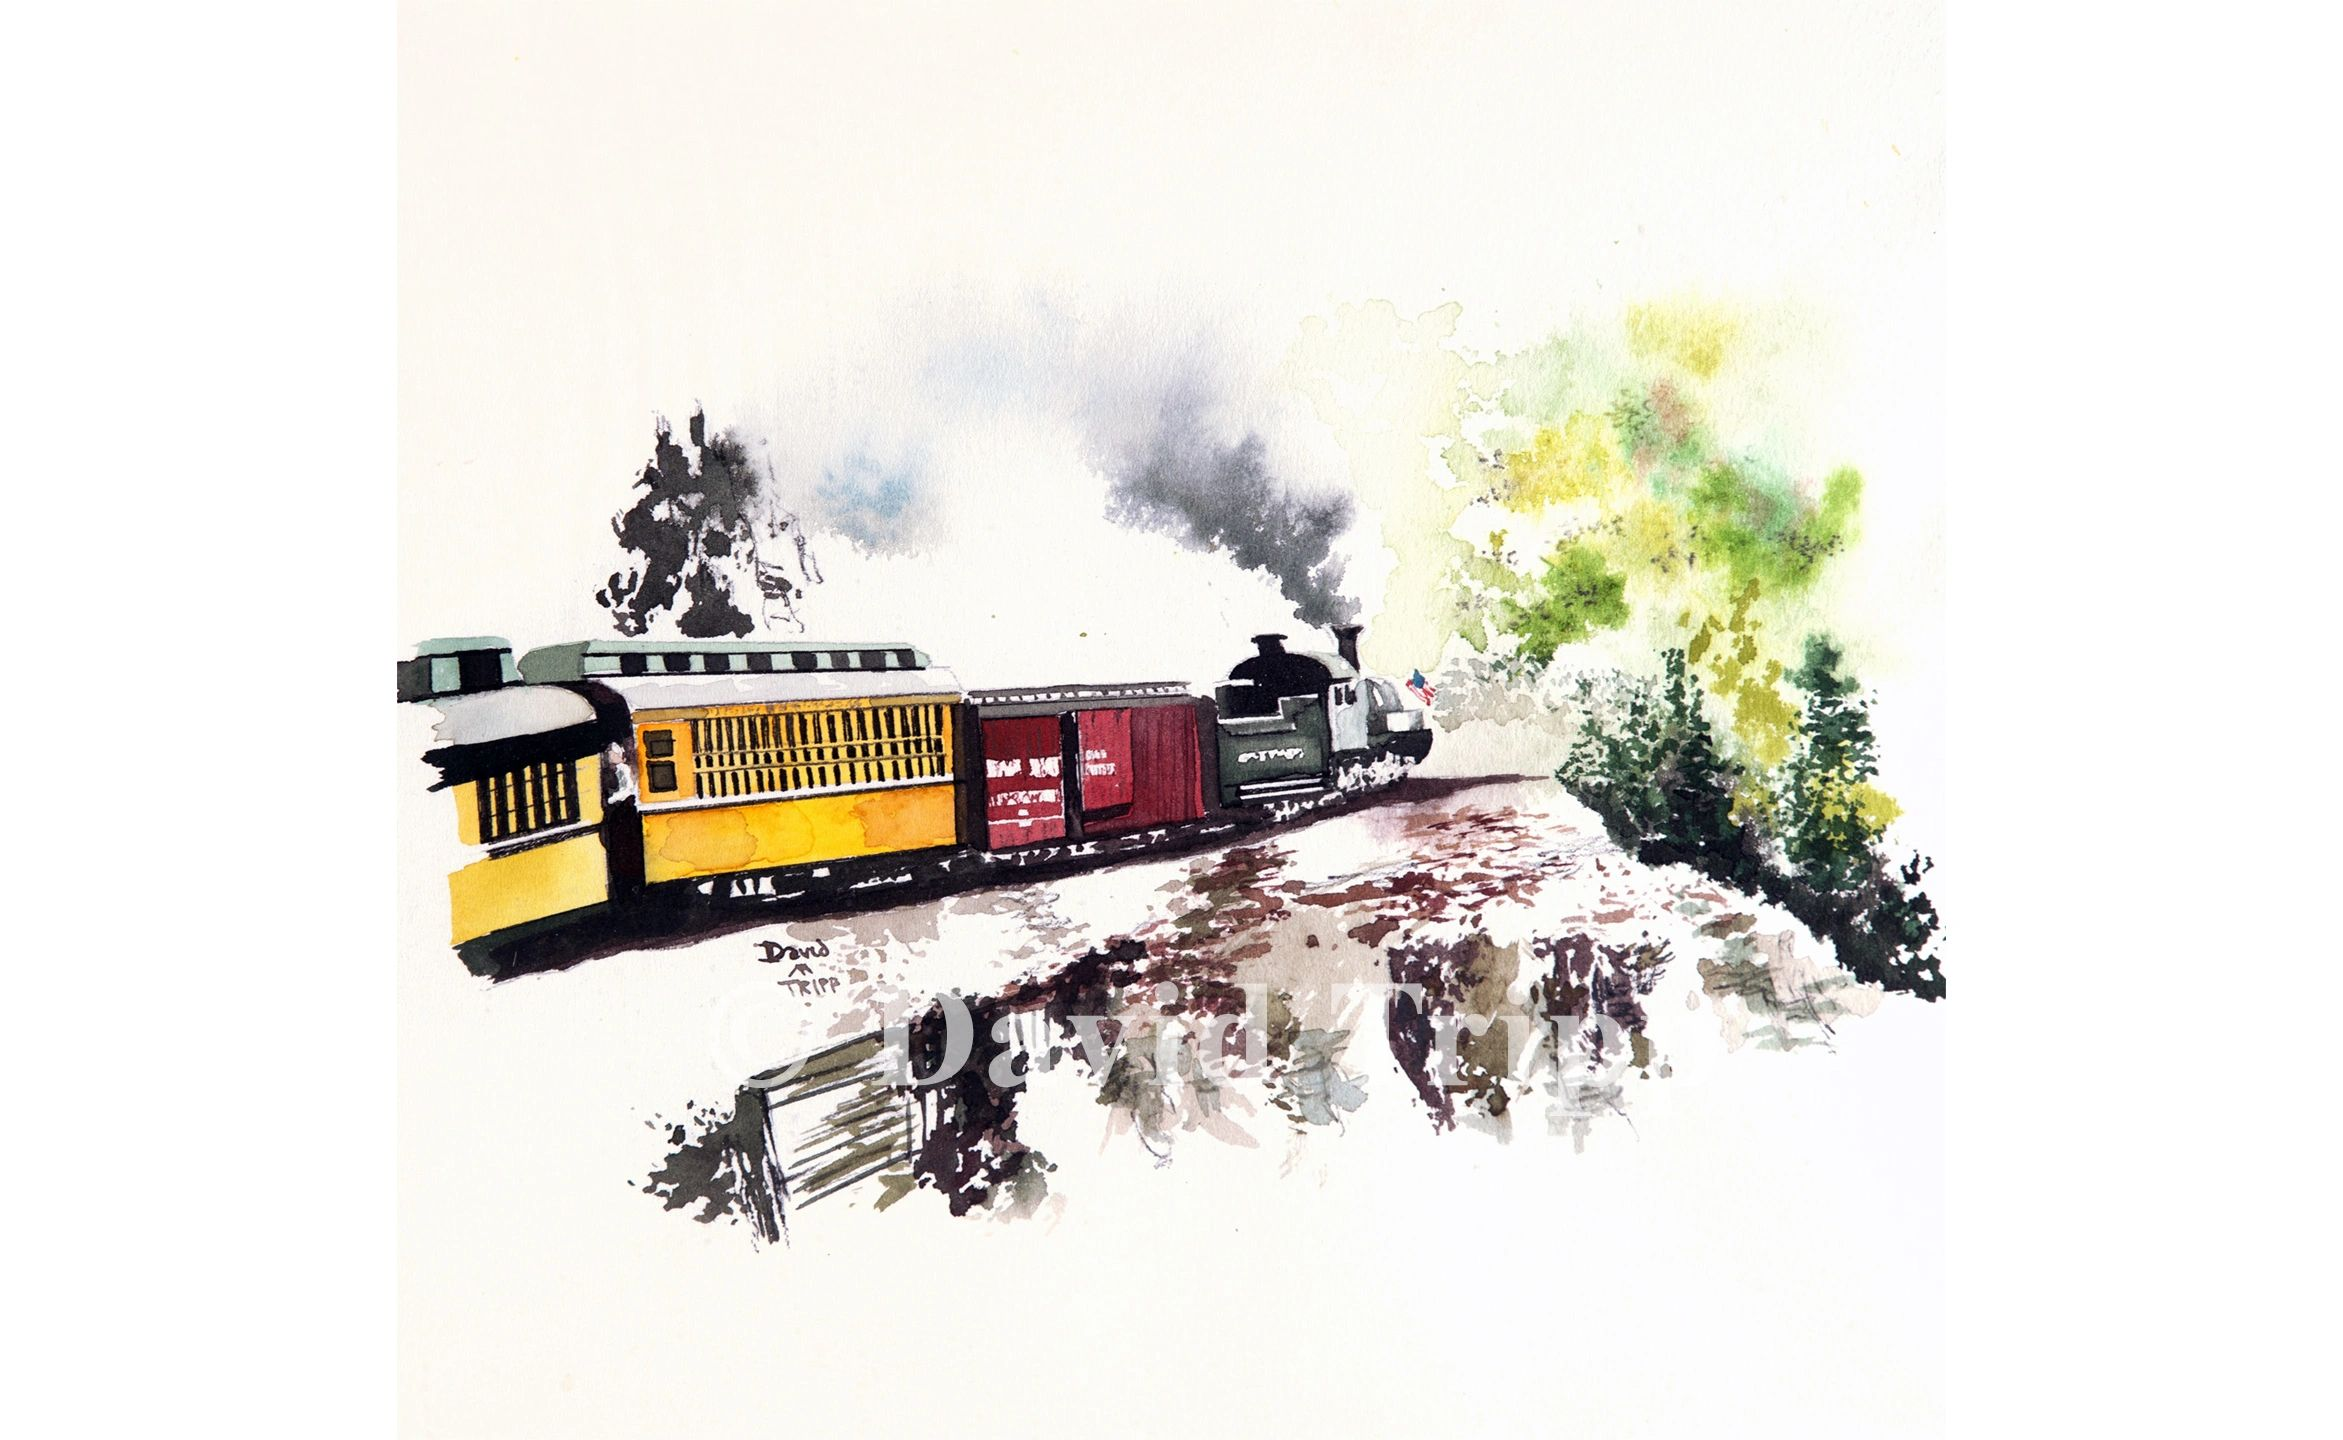 "{""blocks"":[{""key"":""8rr4a"",""text"":""Durango Silverton Railroad Memories\n10H x 12W  Framed  $450"",""type"":""unstyled"",""depth"":0,""inlineStyleRanges"":[{""offset"":0,""length"":35,""style"":""BOLD""}],""entityRanges"":[],""data"":{}}],""entityMap"":{}}"